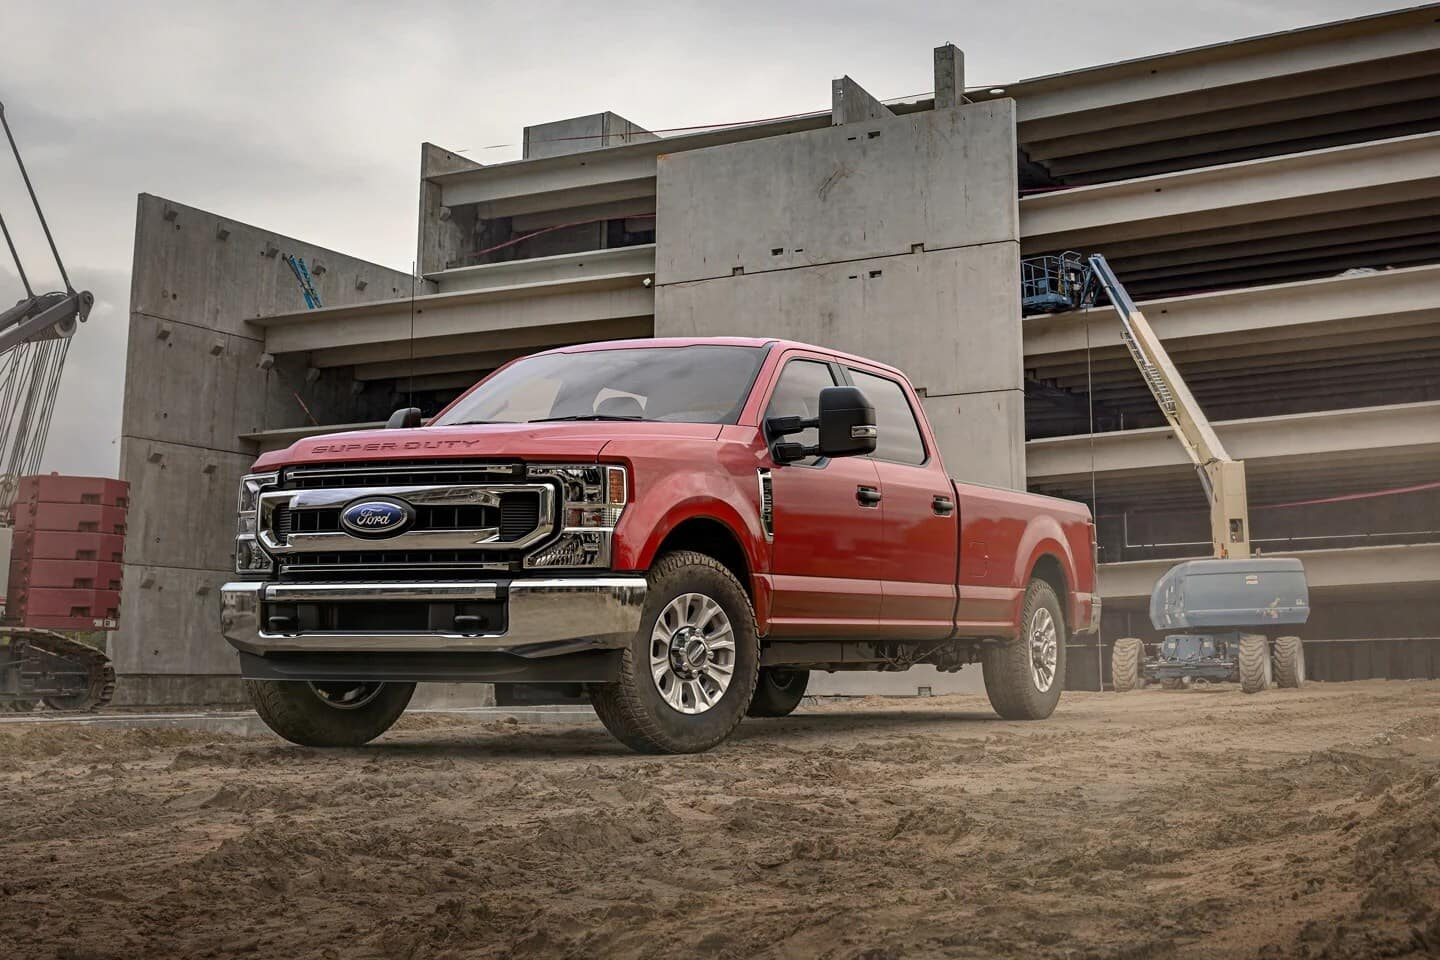 Super Duty Pickup parked on dirt construction site